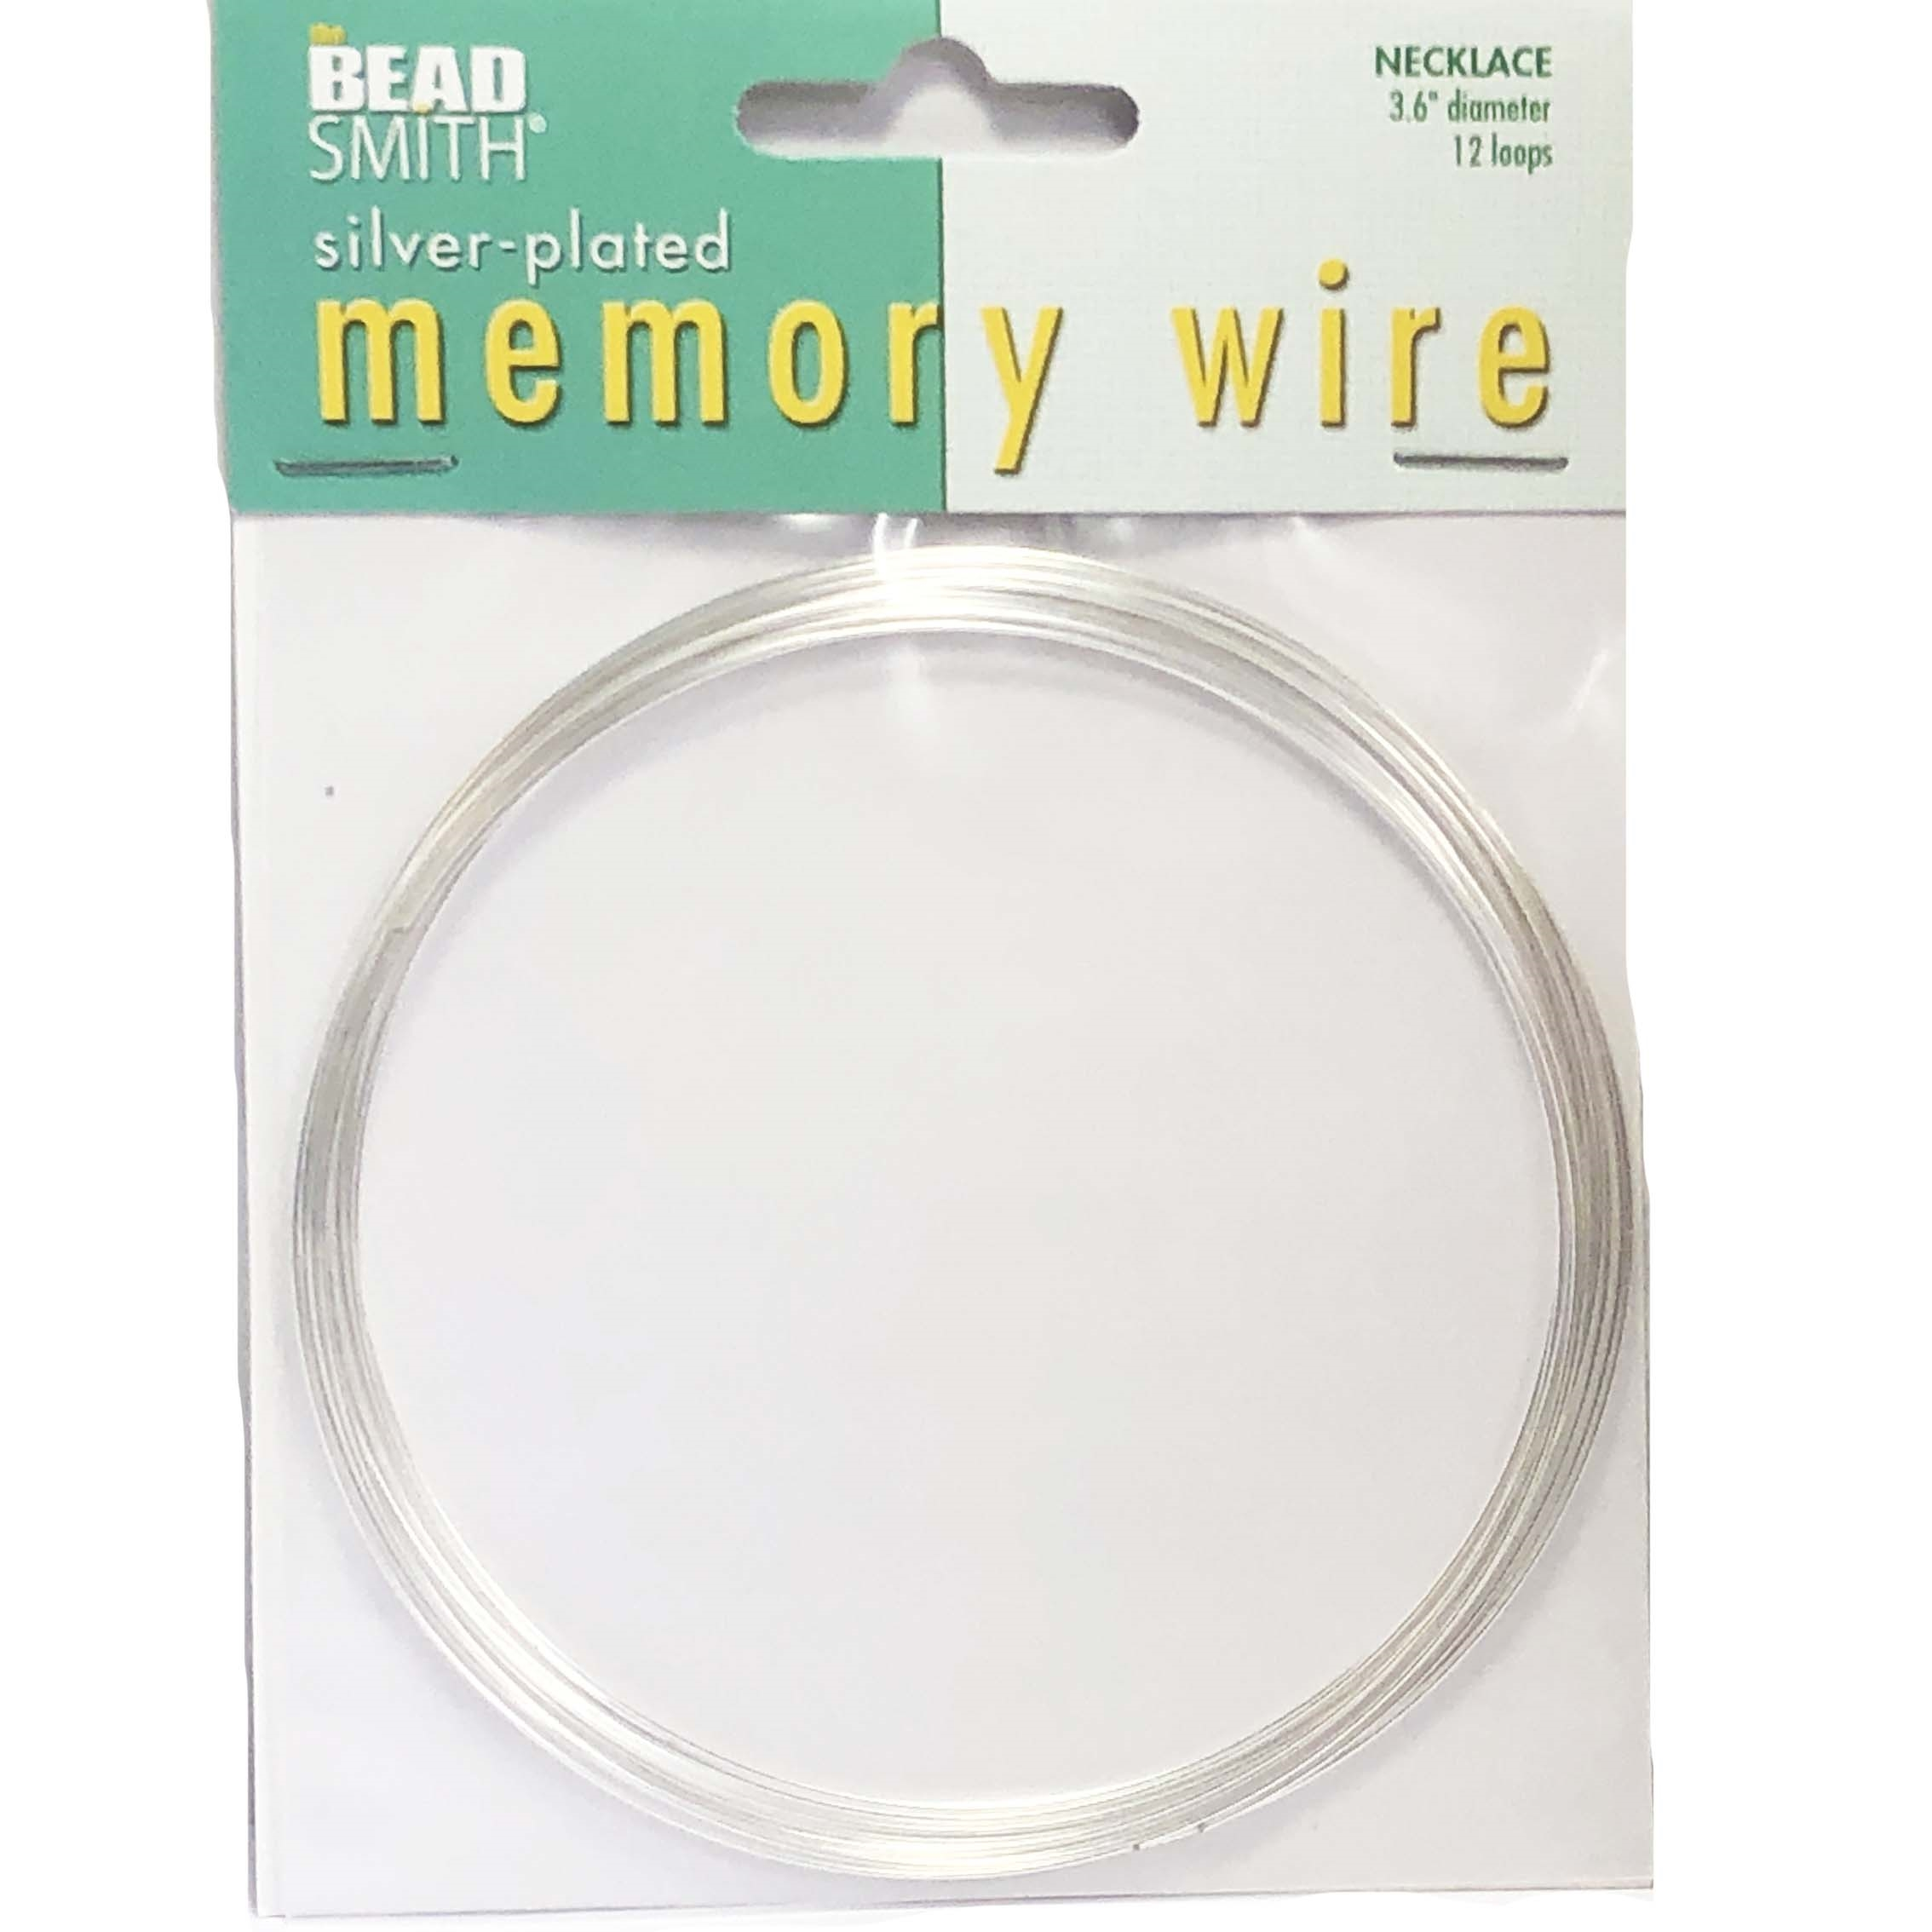 Round Memory Wire, Silver Plate, 046, 36 inch, necklacewire, jewelry wire, craft wire, jewelry making supplies, stainless steel memory wire, 12 loop wire, round wire